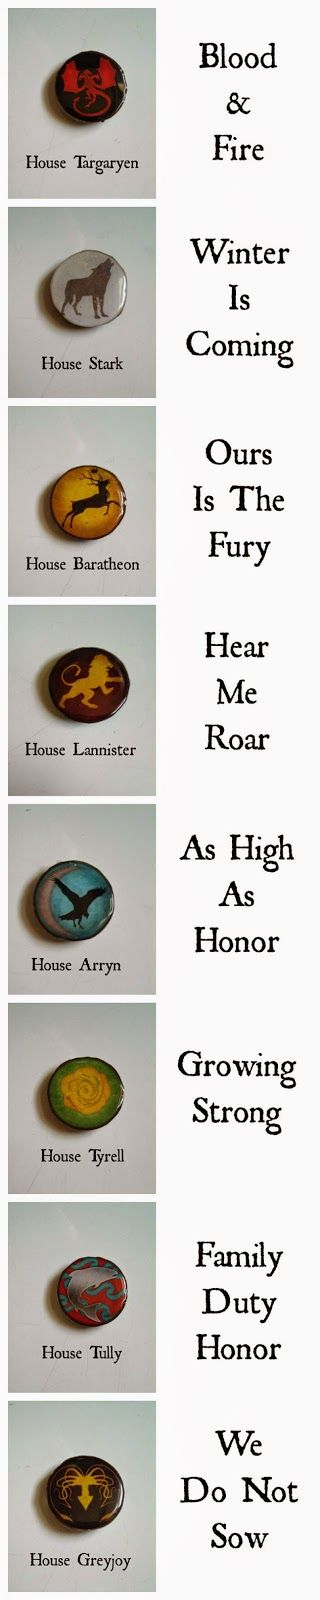 1000 Images About Game Of Thrones On Pinterest Homemade